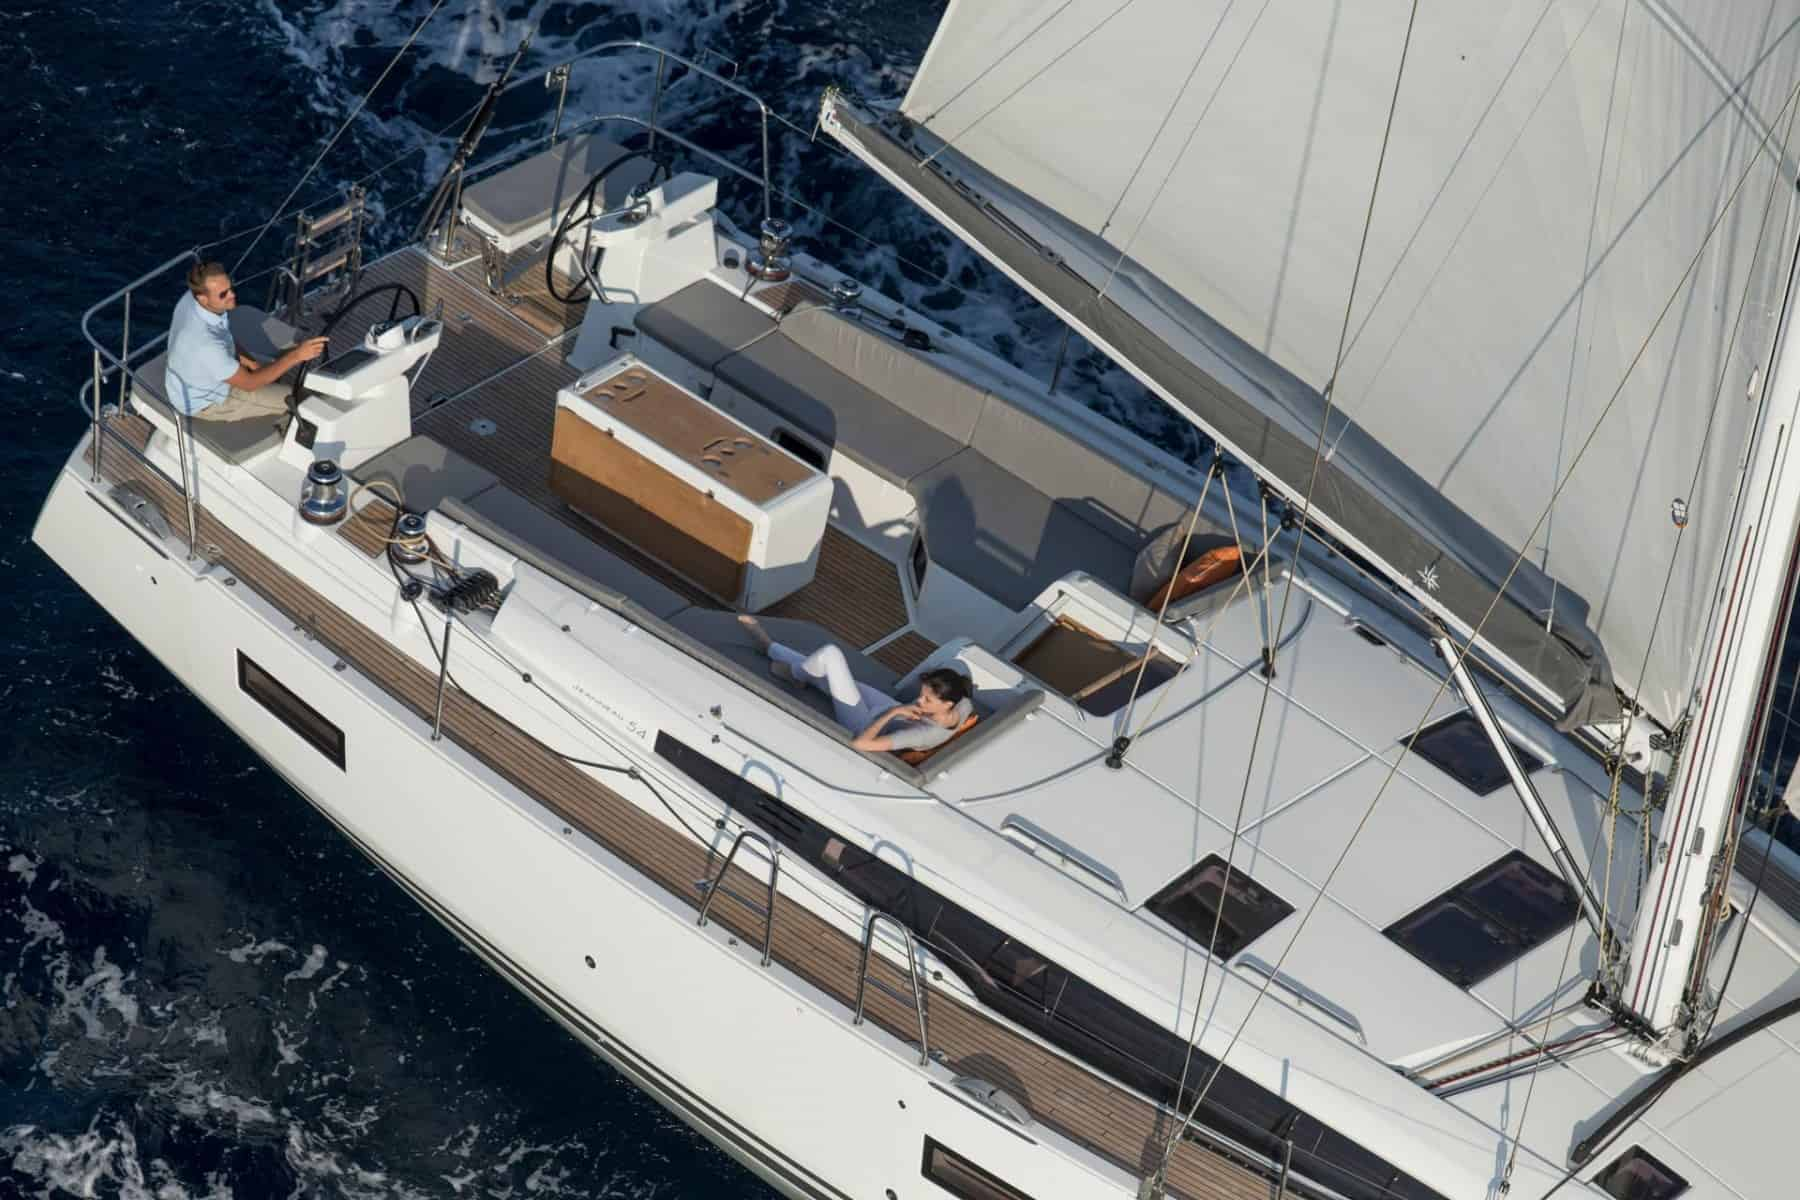 Jeanneau-54-exterior-7-charter-ownership-yacht